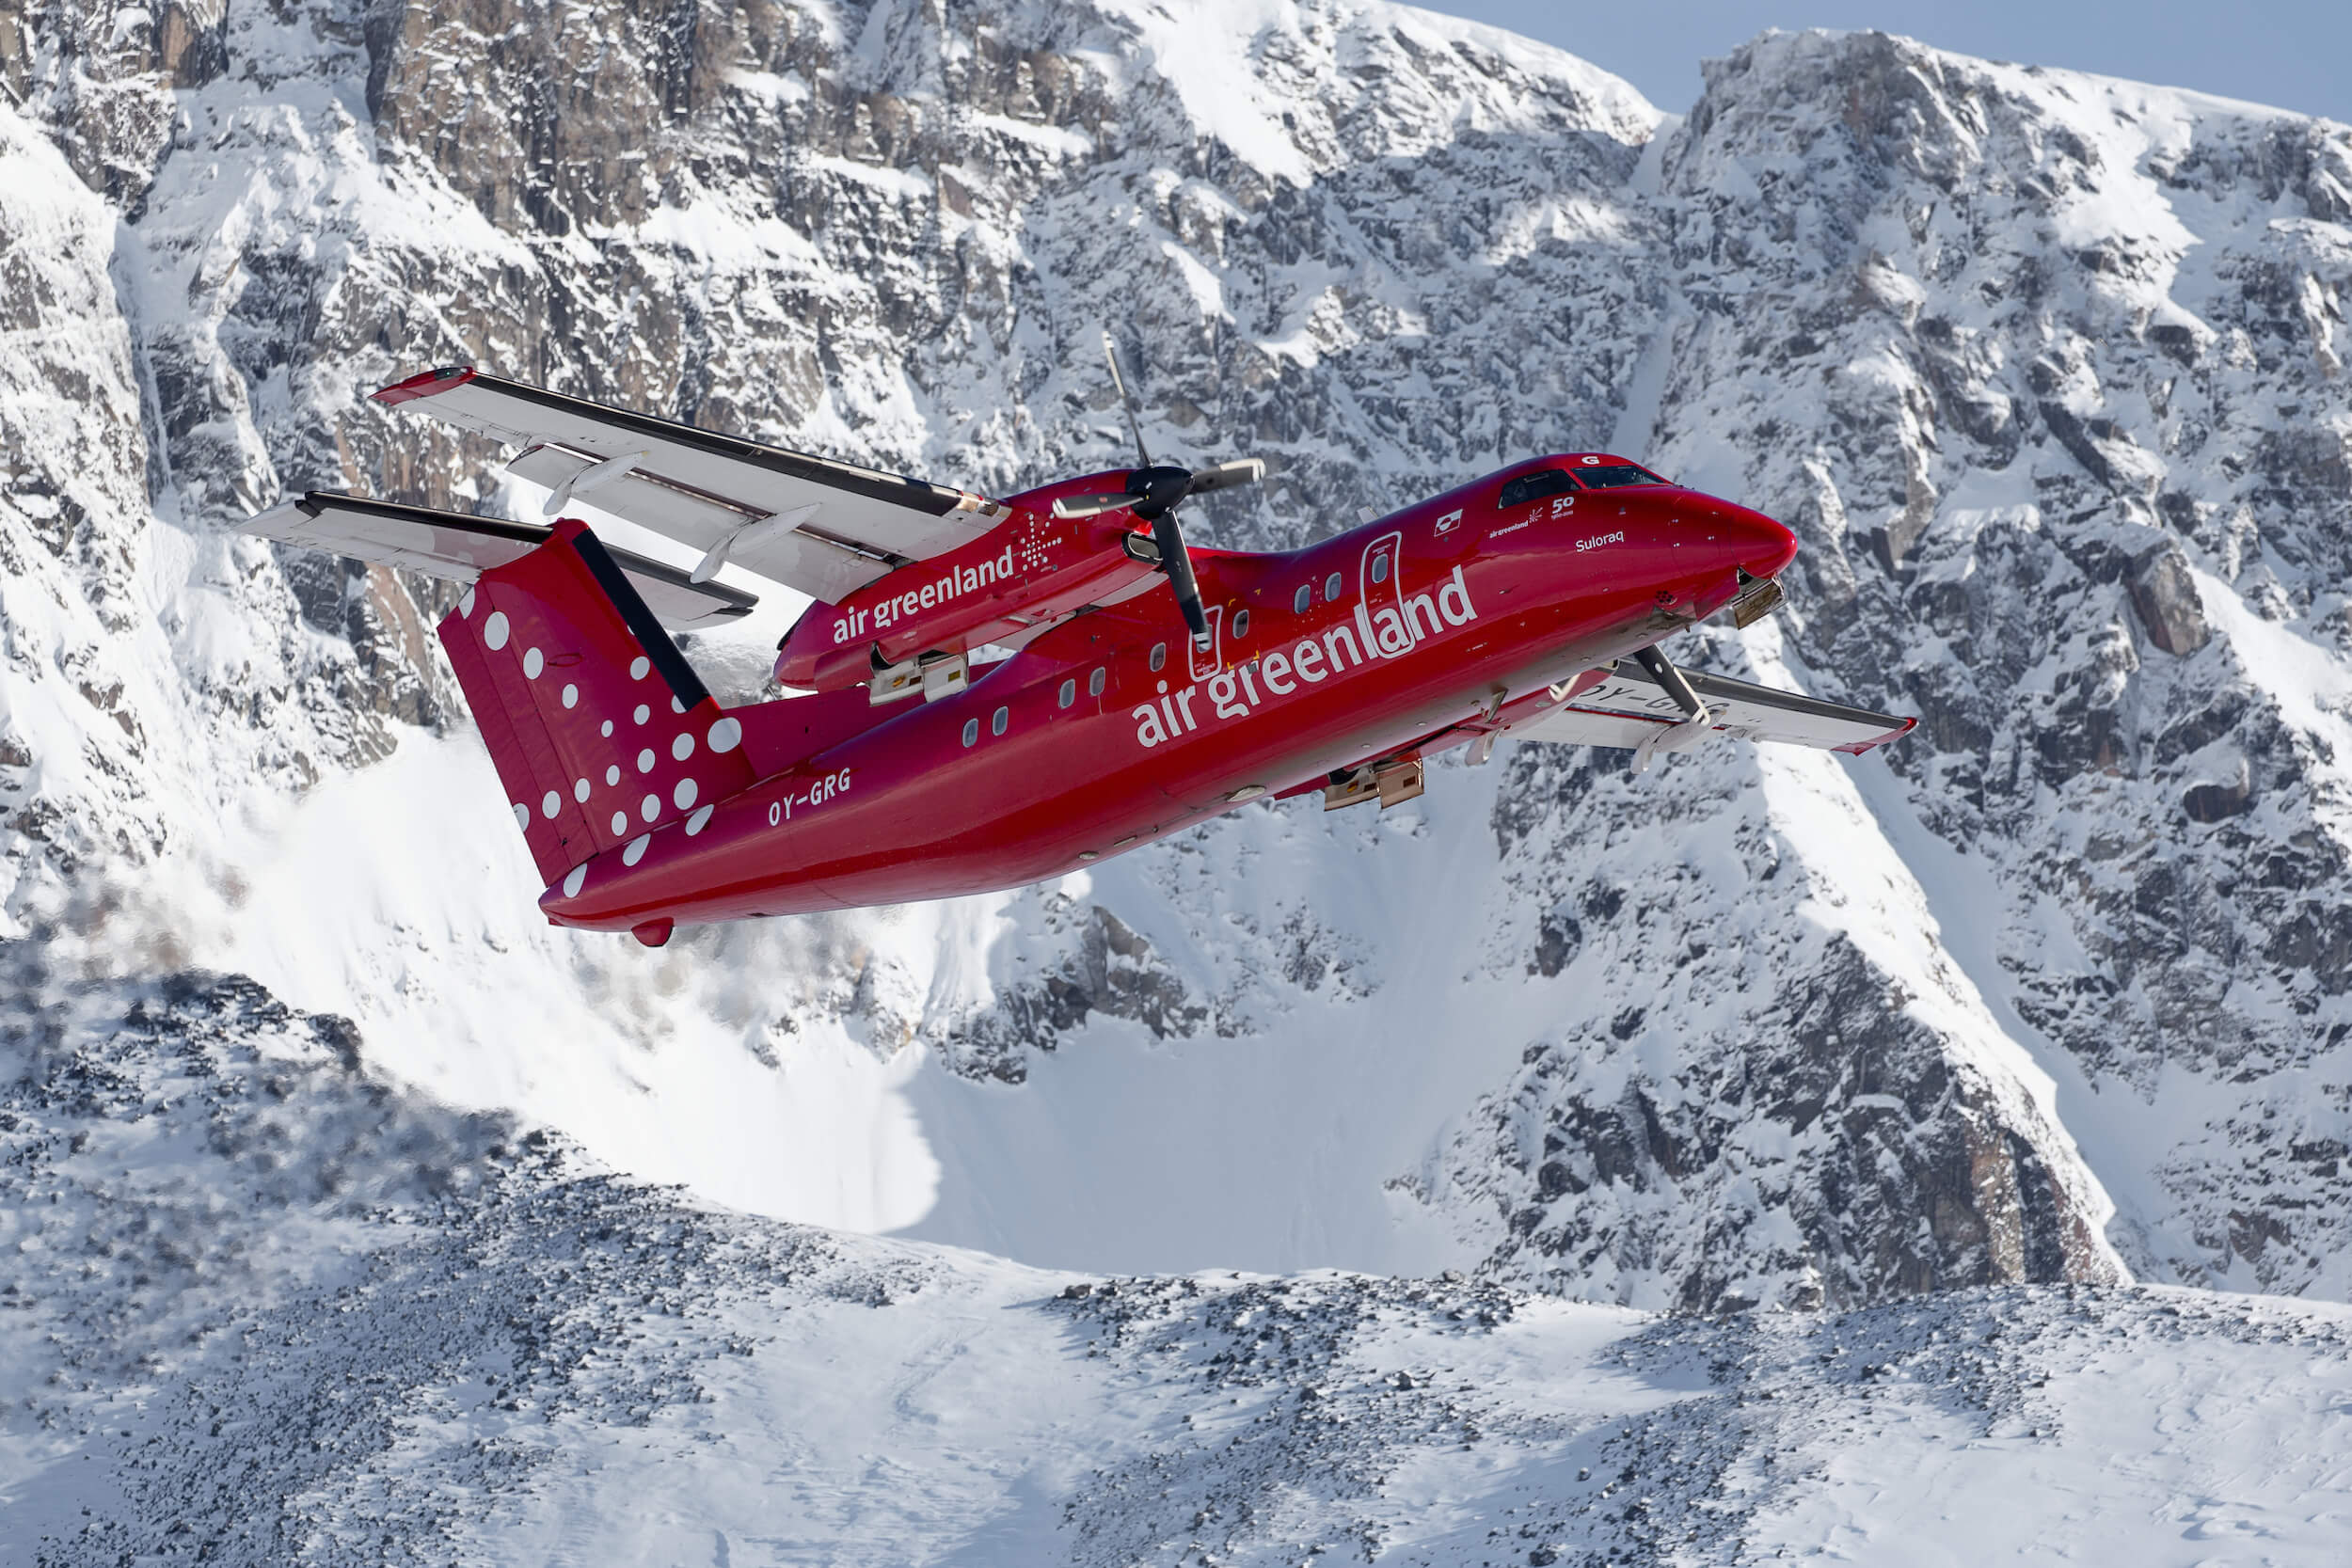 An Air Greenland Dash-8 taking off from Kulusuk in East Greenland. Photo by Mads Pihl